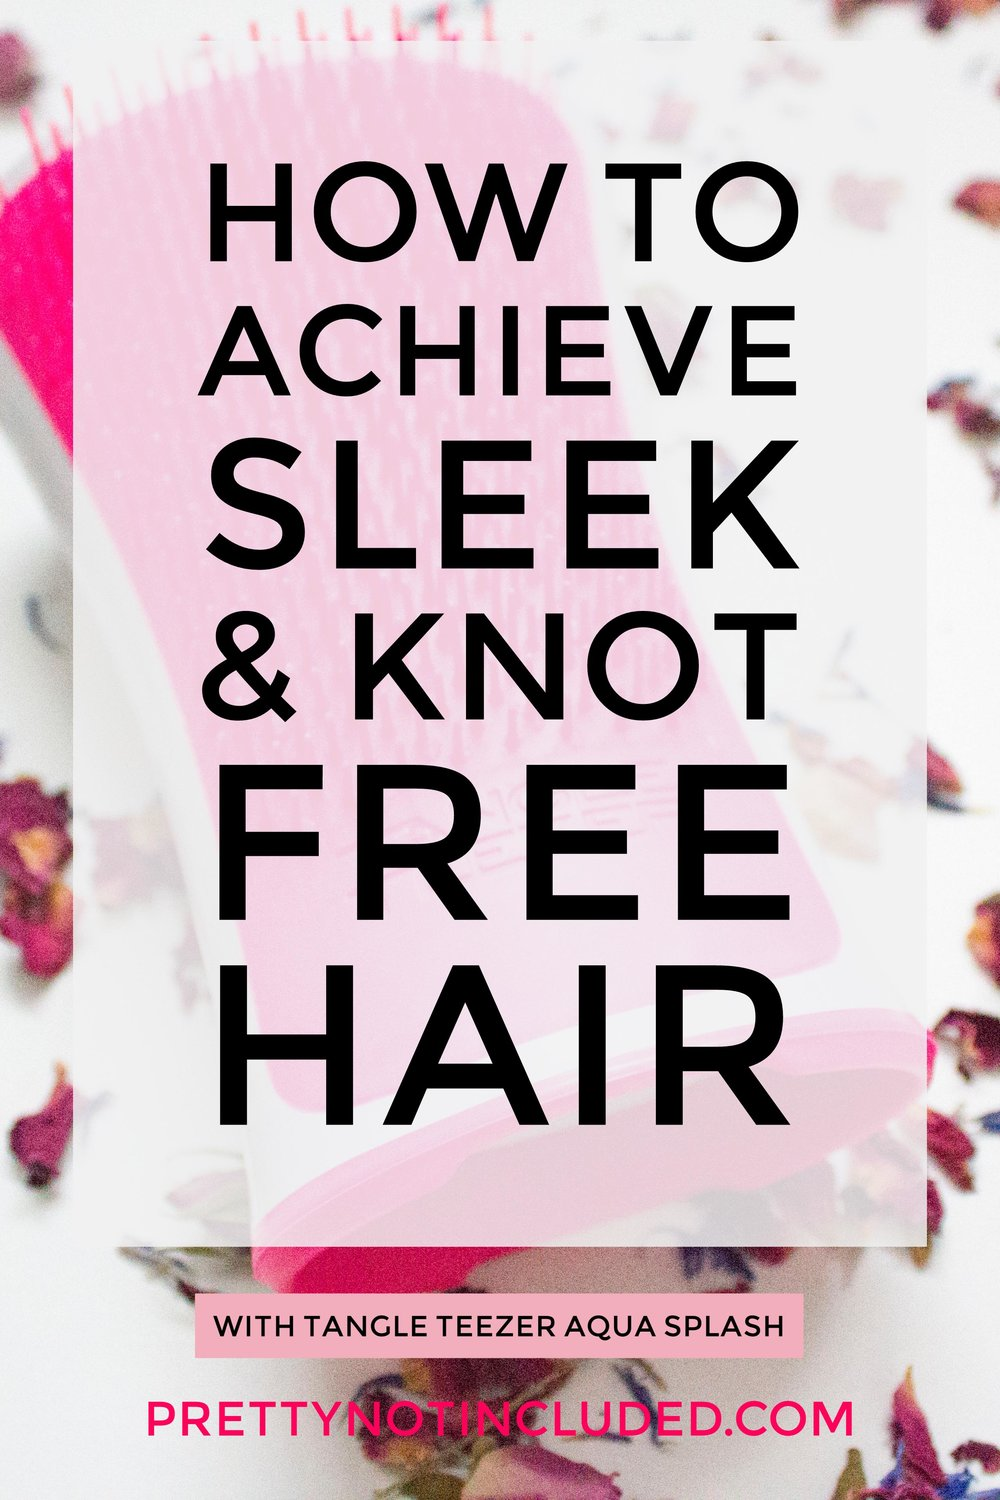 How to achieve Sleek & Knot Free Hair With Tangle Teezer Aqua Splash